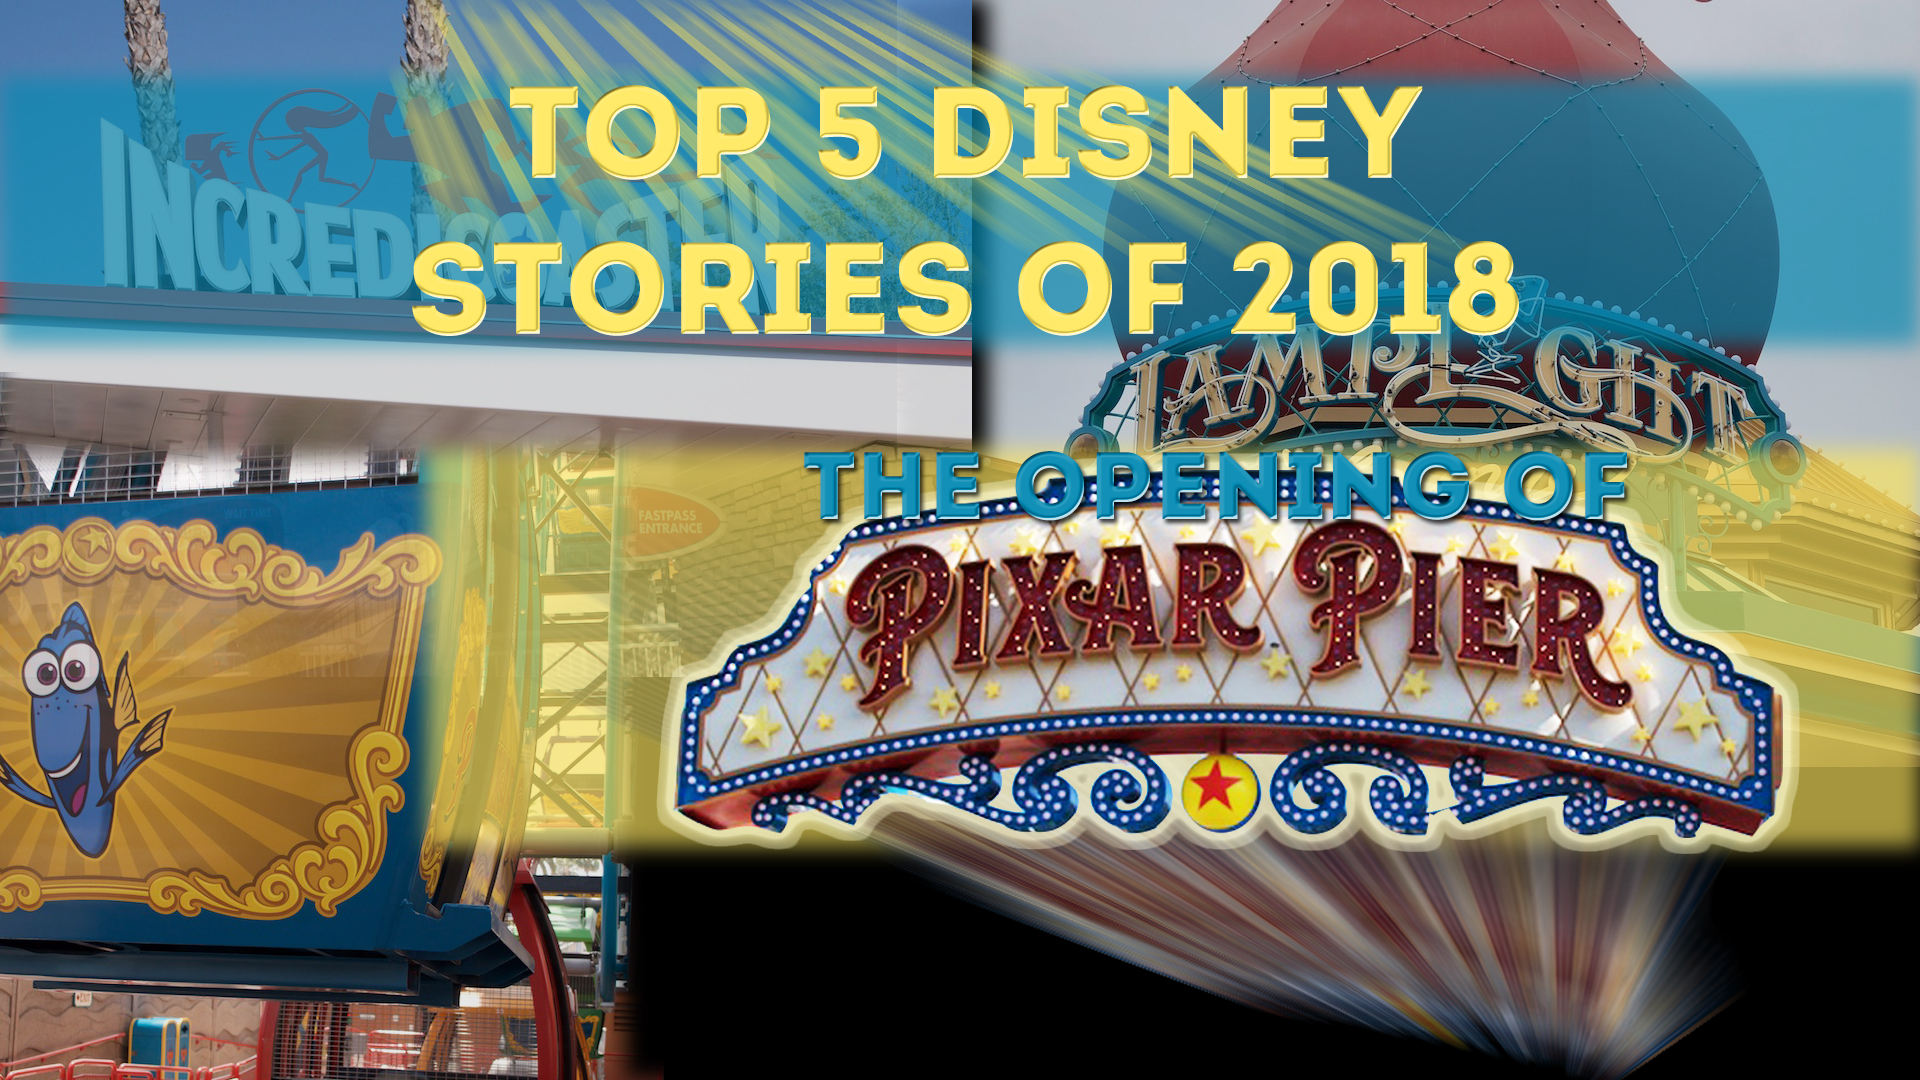 Here's Why Pixar Pier is One of the Biggest Disney Stories of 2018 – Top 5 Disney Stories of 2018